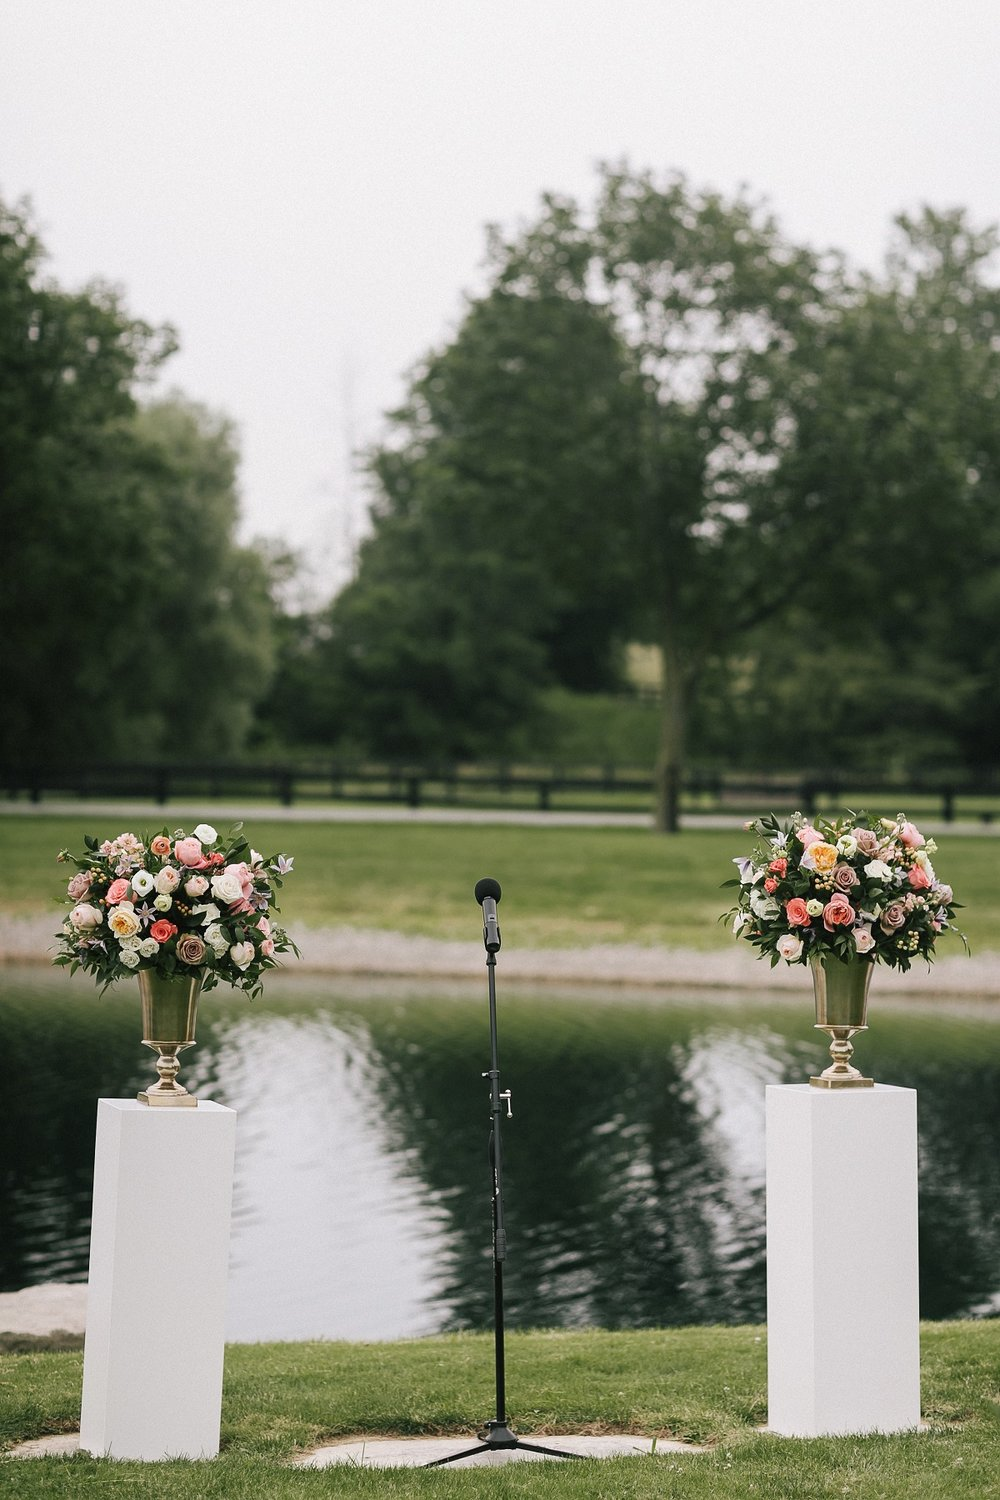 tented-wedding-planner-ancaster-kj-and-co 16.JPG